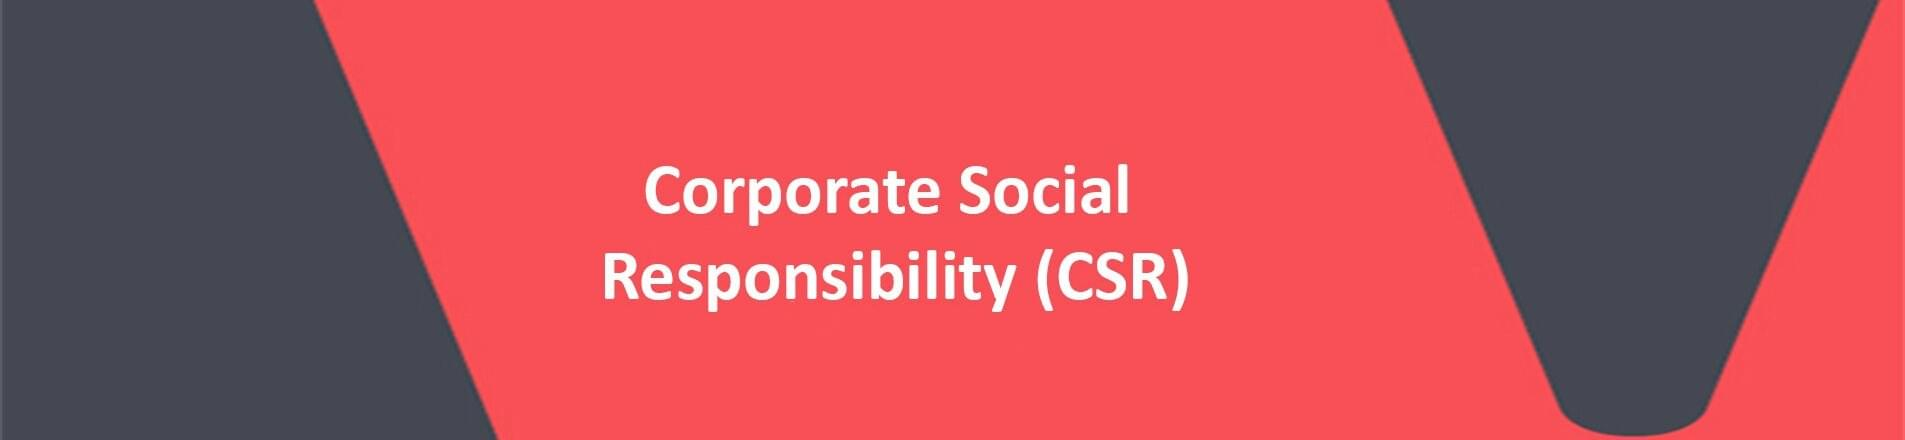 Red background with white text spelling Corporate Social Responsibility.